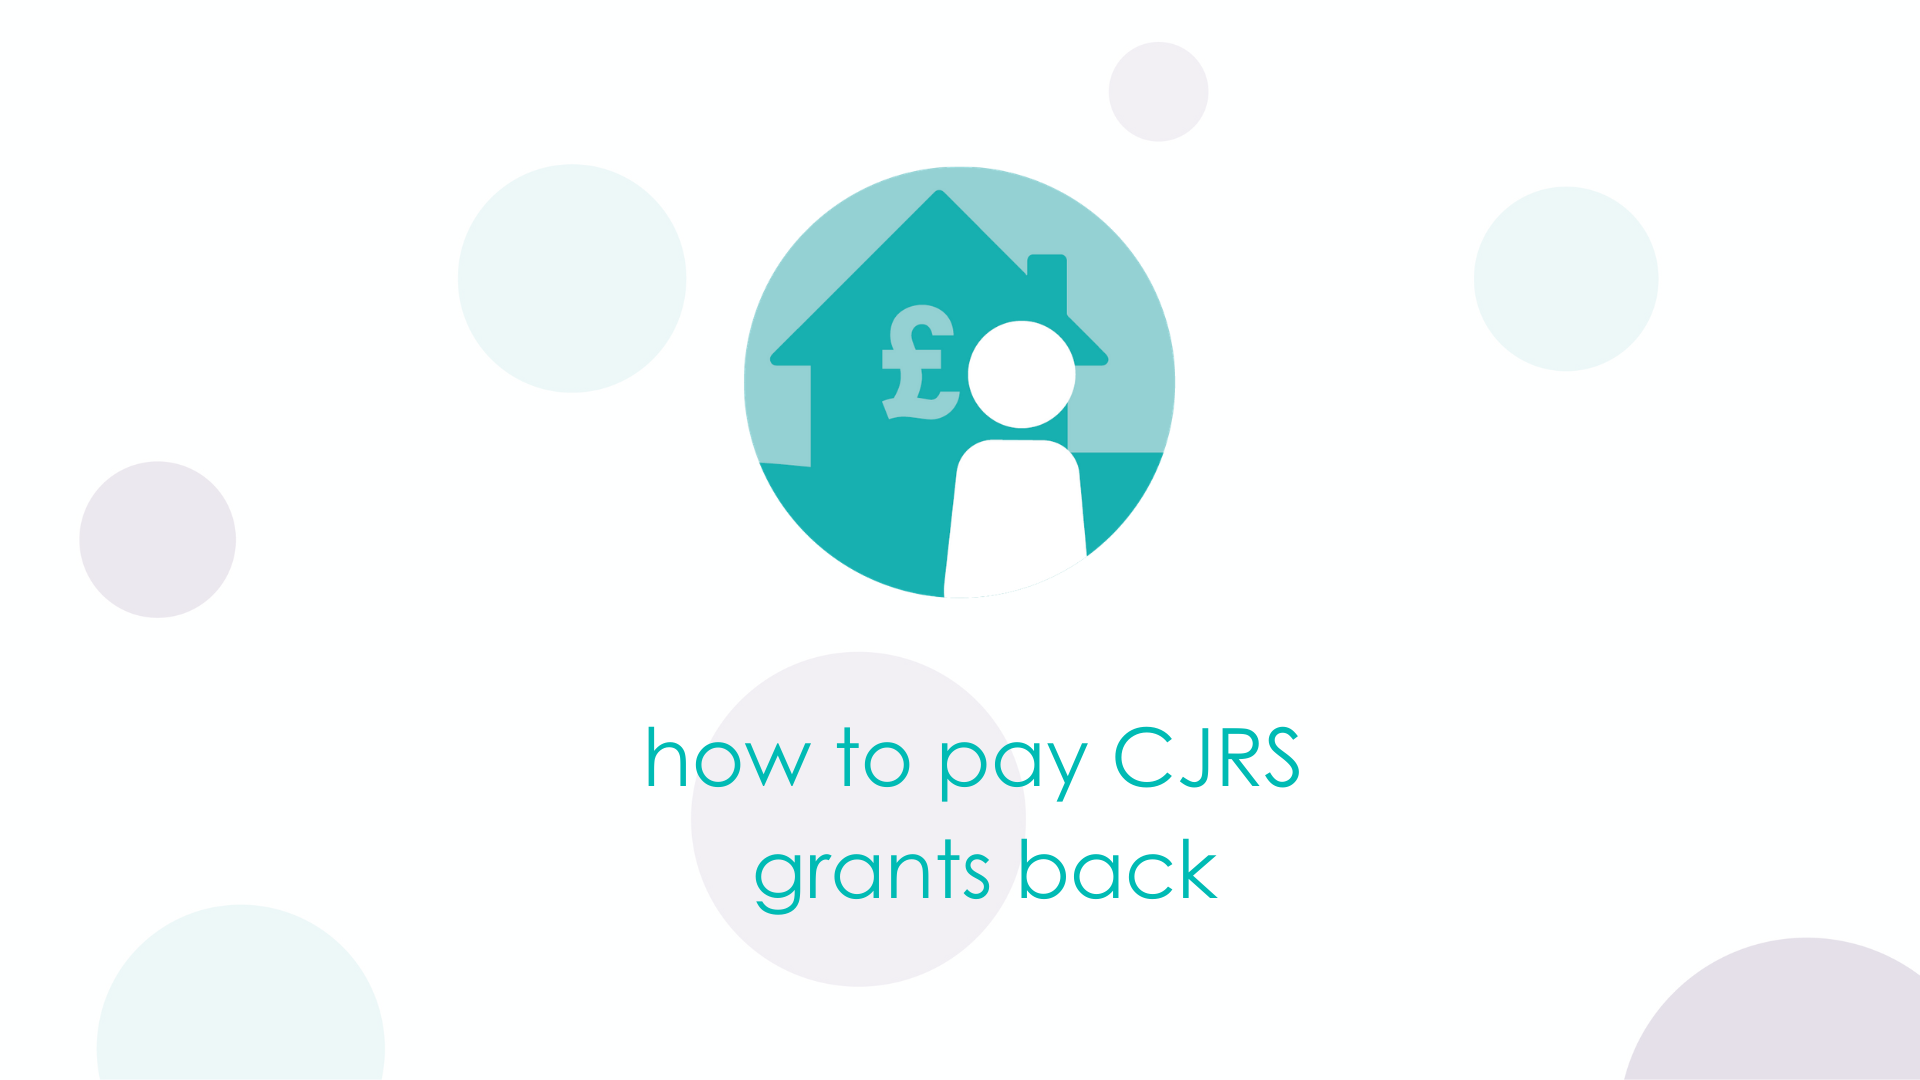 How to pay CJRS grants back